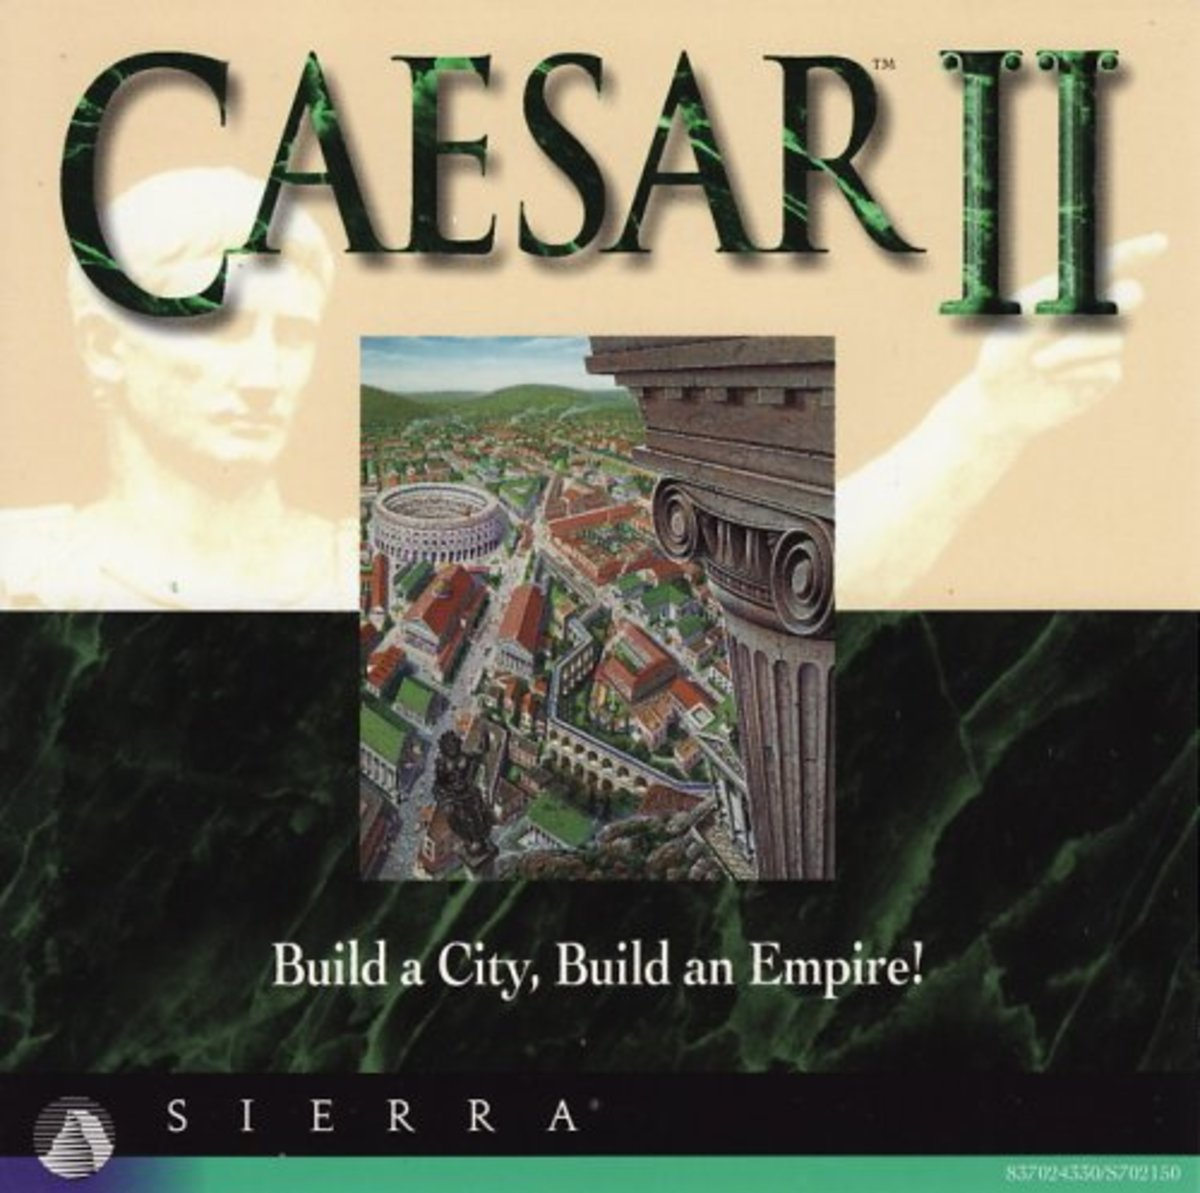 Caesar II (fair use)